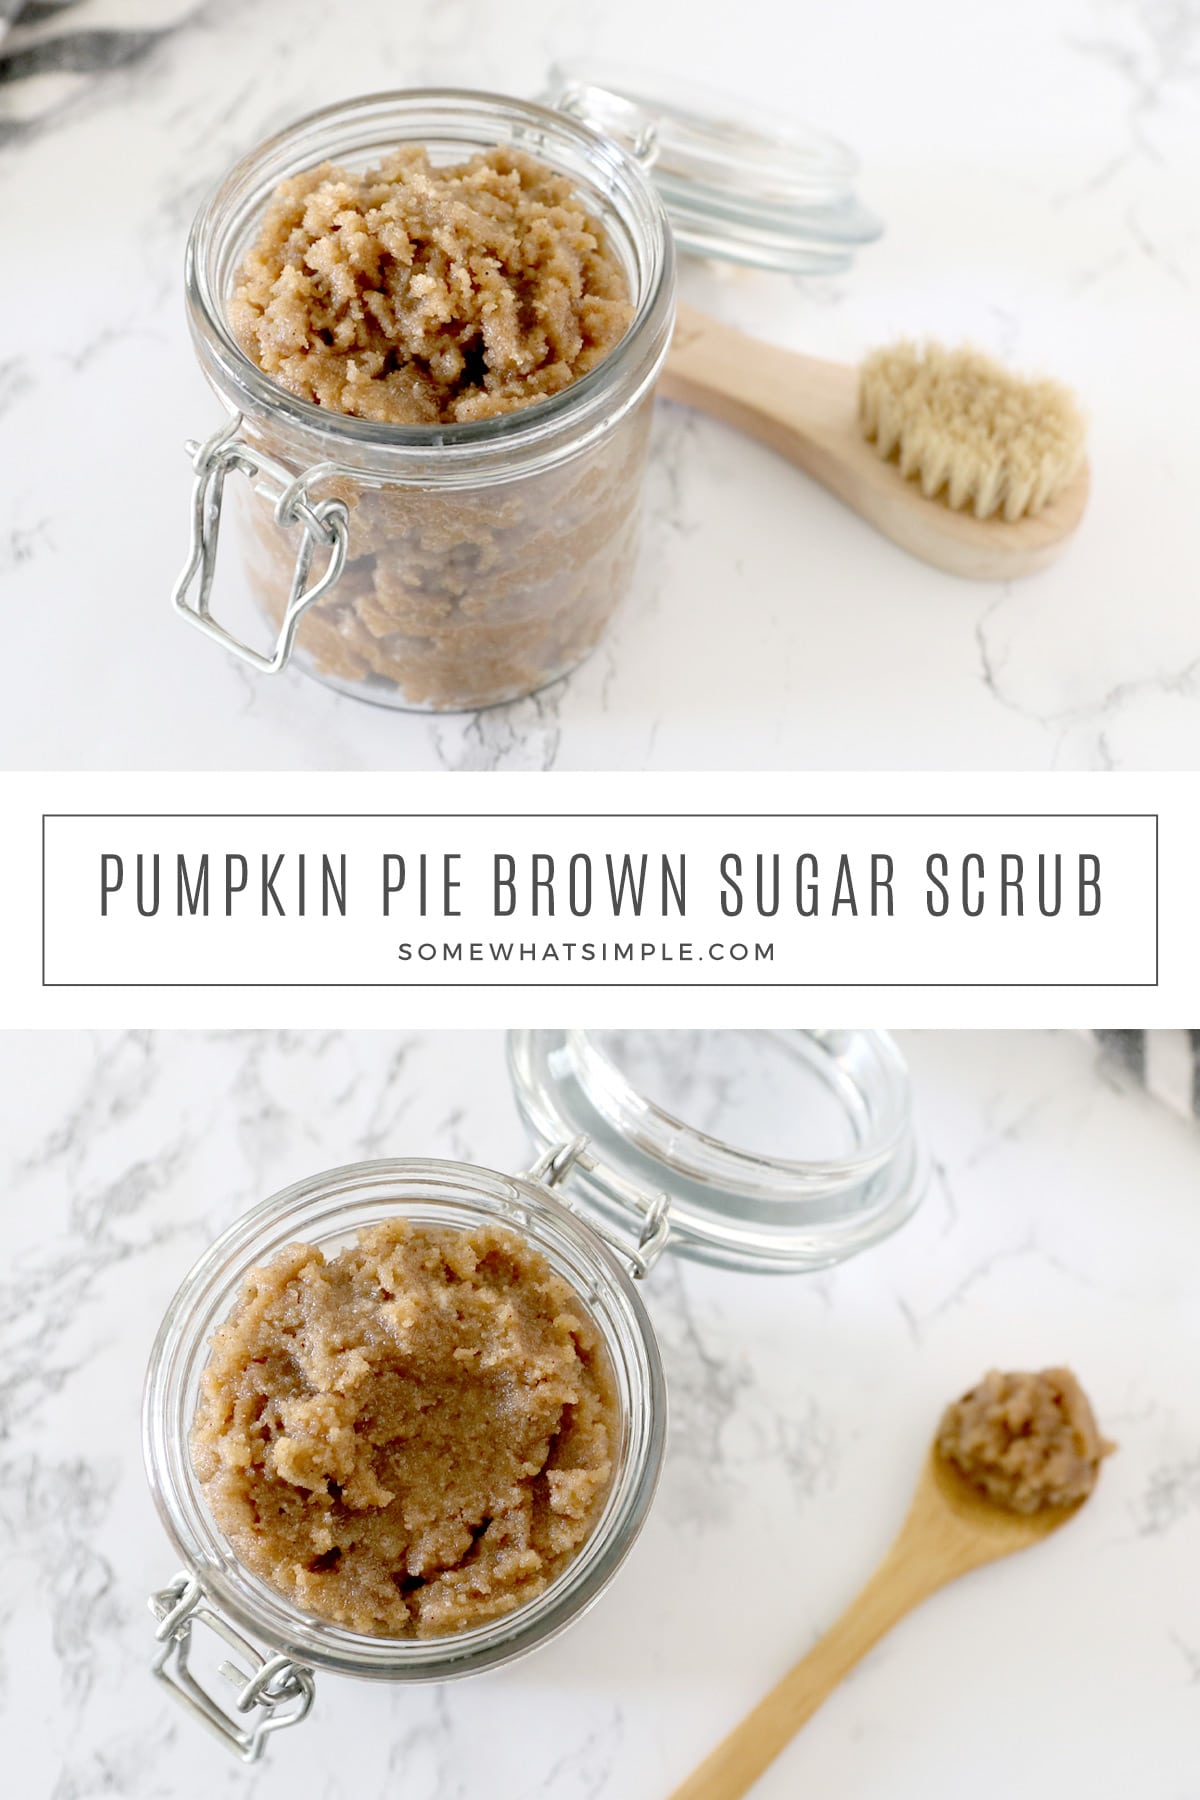 Pumpkin Spice Sugar Scrub is simple to make and smells delicious! It leaves your skin feeling silky smooth, and makes a great holiday gift idea! via @somewhatsimple